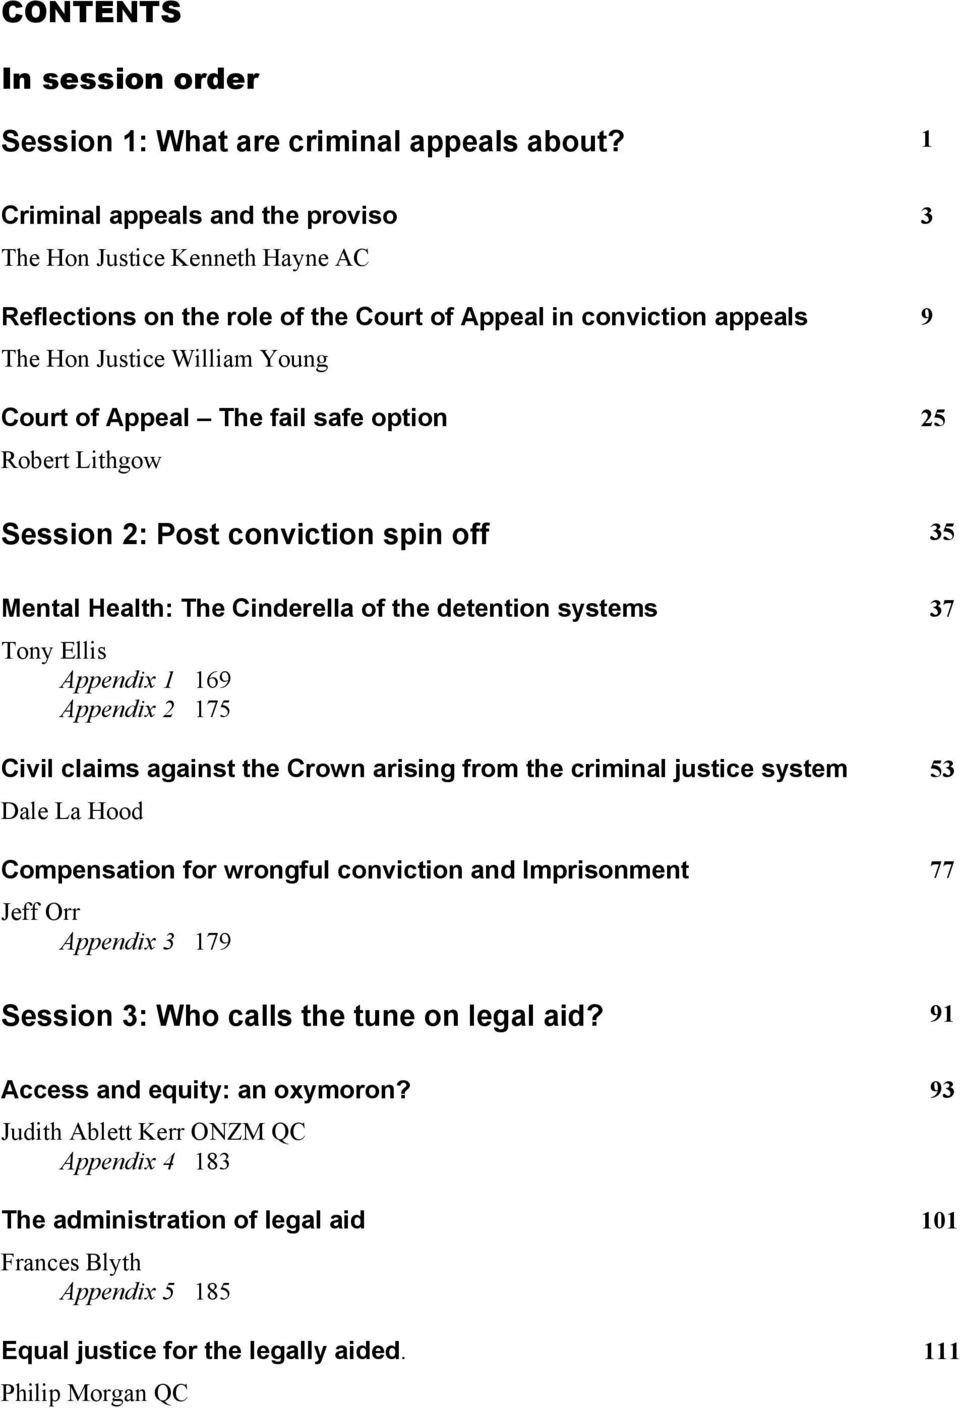 safe option 25 Robert Lithgow Session 2: Post conviction spin off 35 Mental Health: The Cinderella of the detention systems 37 Tony Ellis Appendix 1 169 Appendix 2 175 Civil claims against the Crown